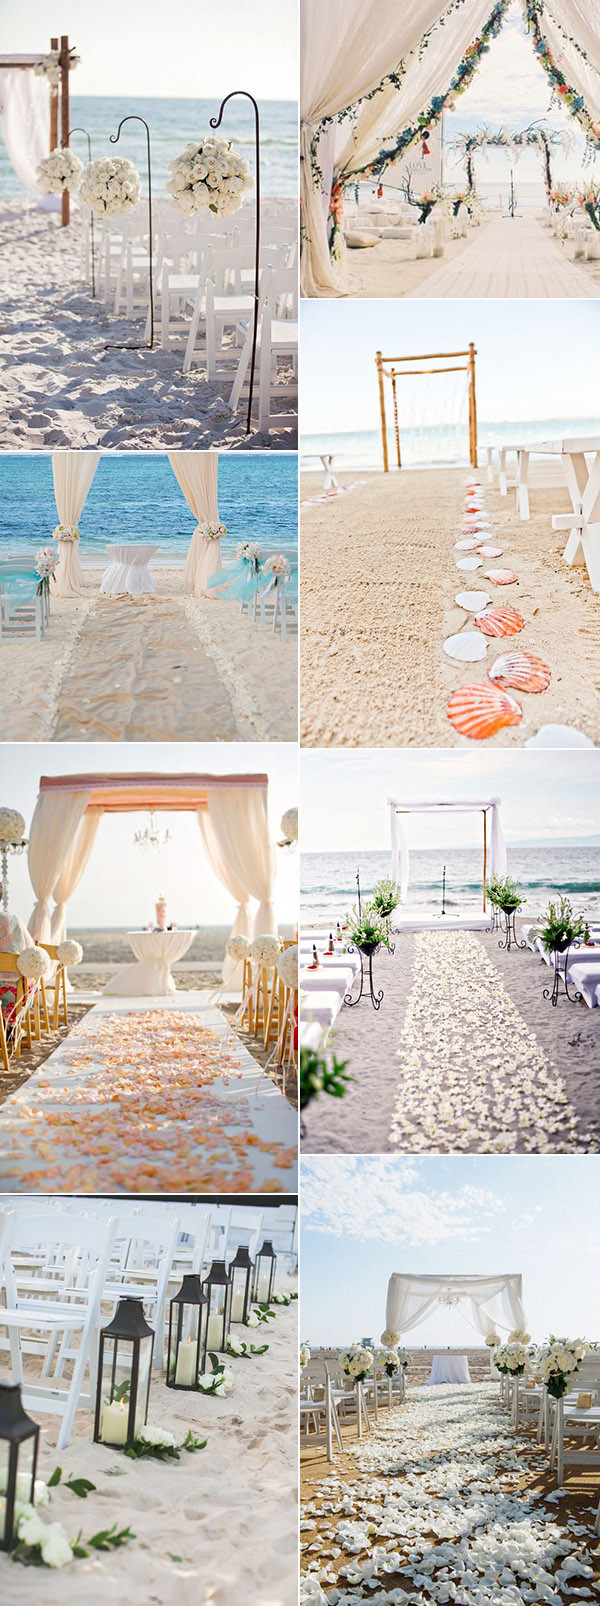 Beach Wedding Ideas – Fashion dresses